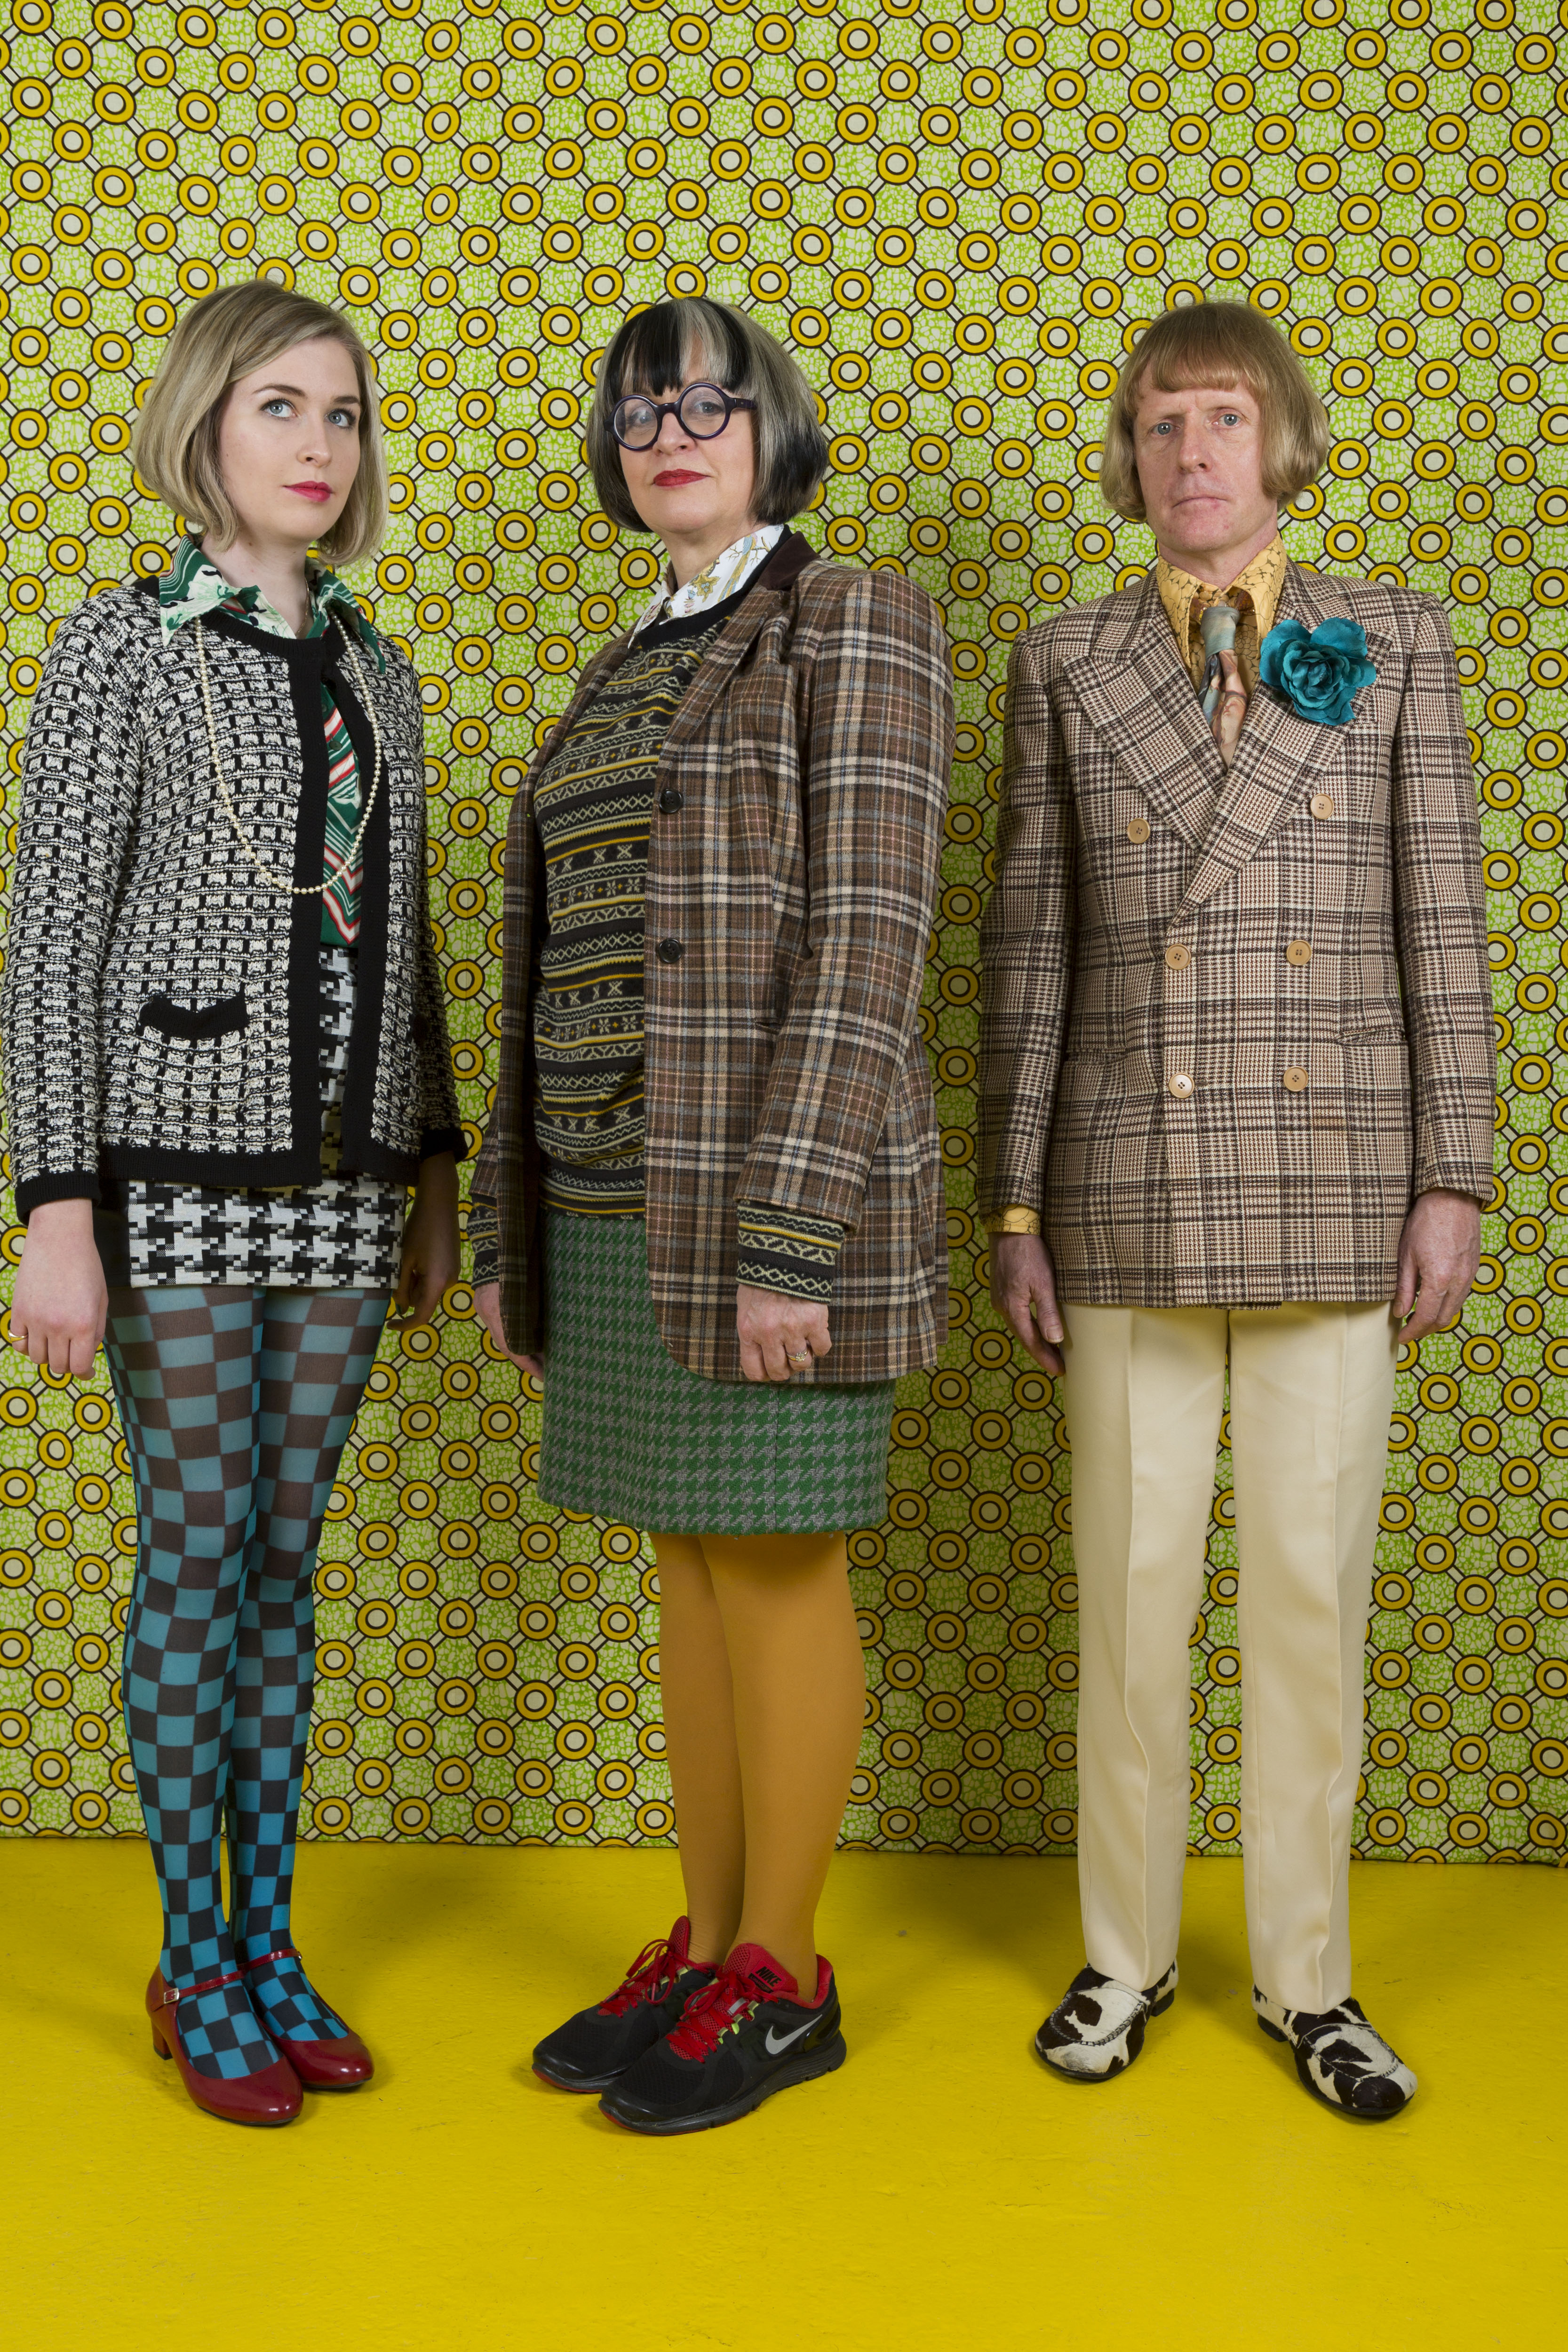 Grayson Perry with his wife Philippa and daughter Florence (Martin Parr/Magnum Photos/Rocket Gallery)